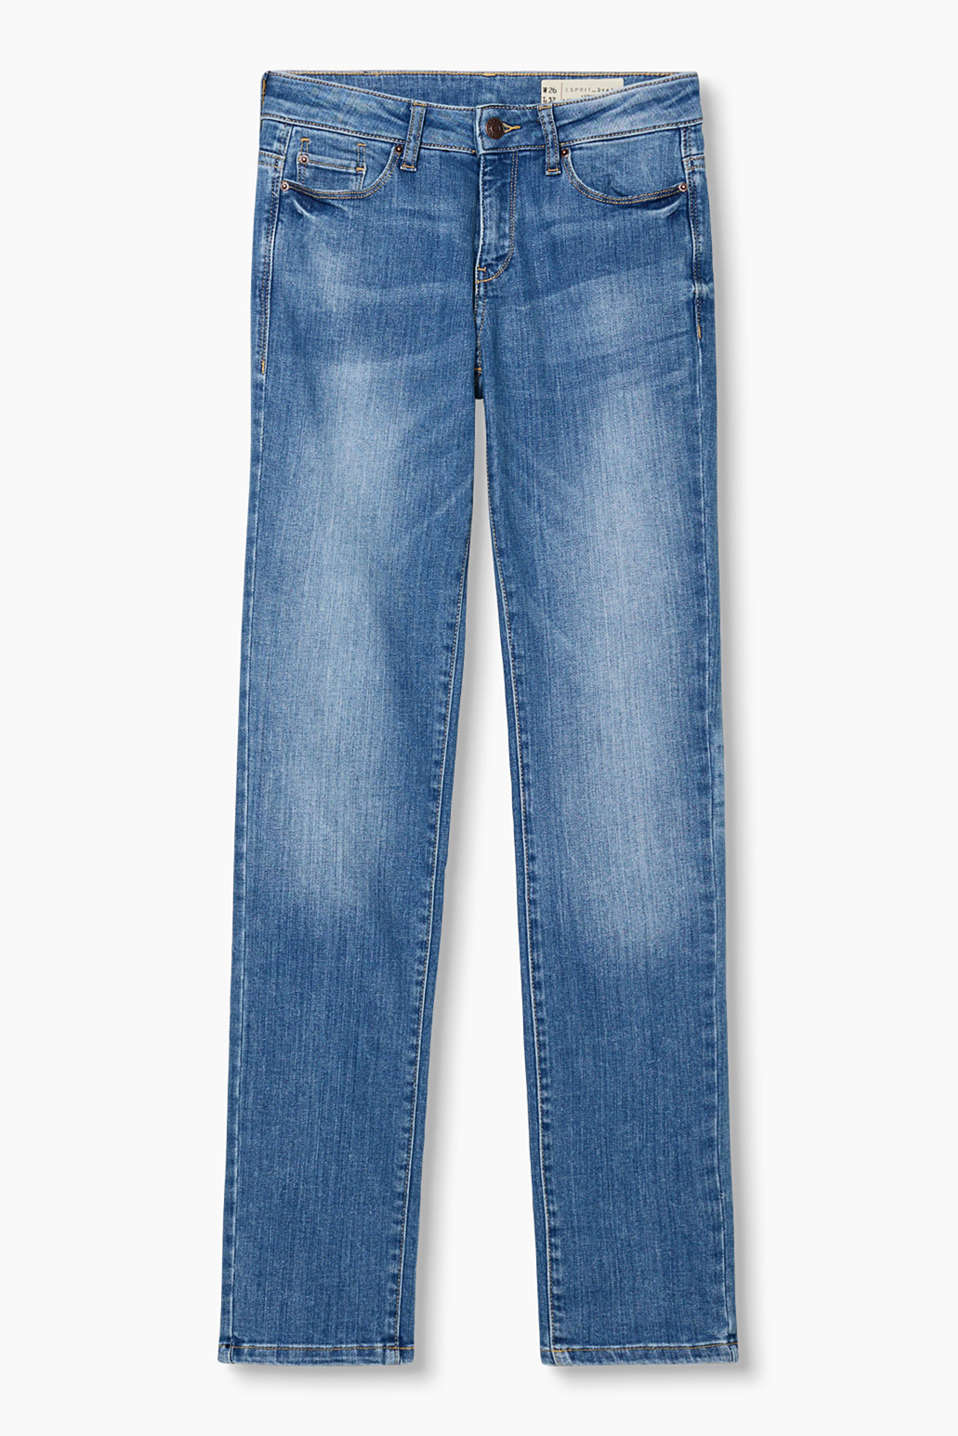 These straight cut stretch denim jeans in a five-pocket style and a pale wash create a fresh look!